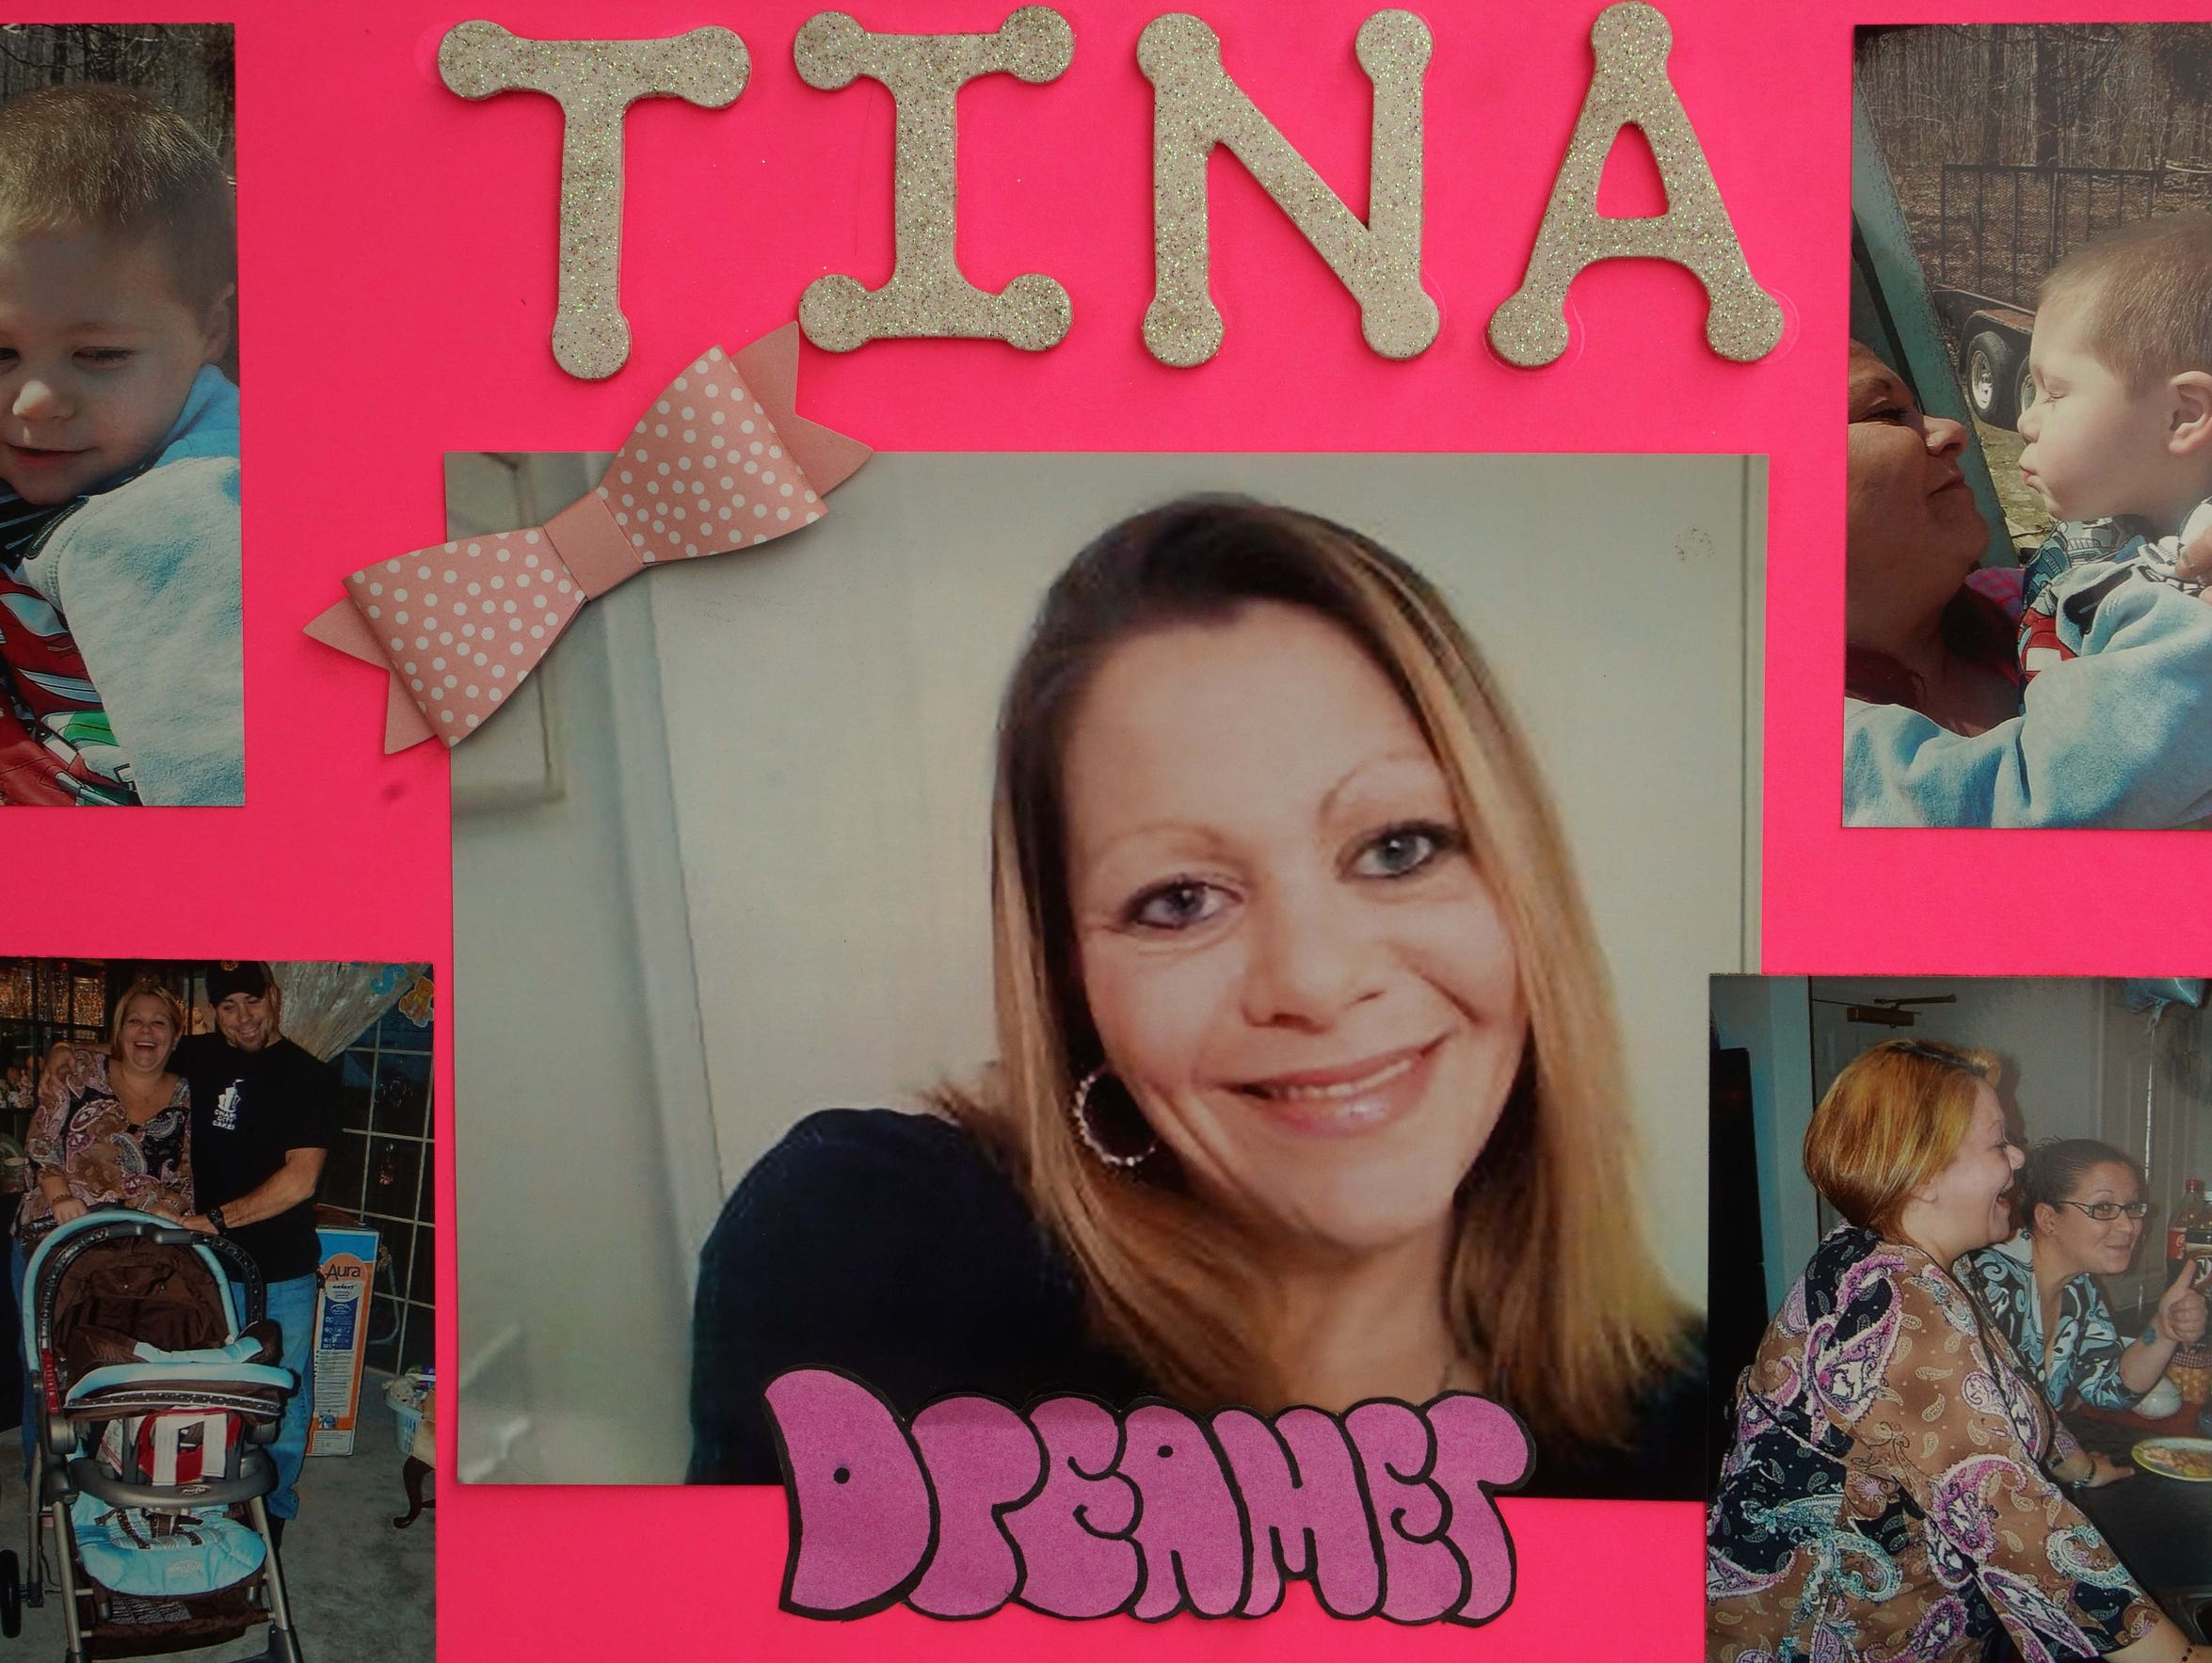 Linda Bucci's 35-old-daughter, Tina, was found dead